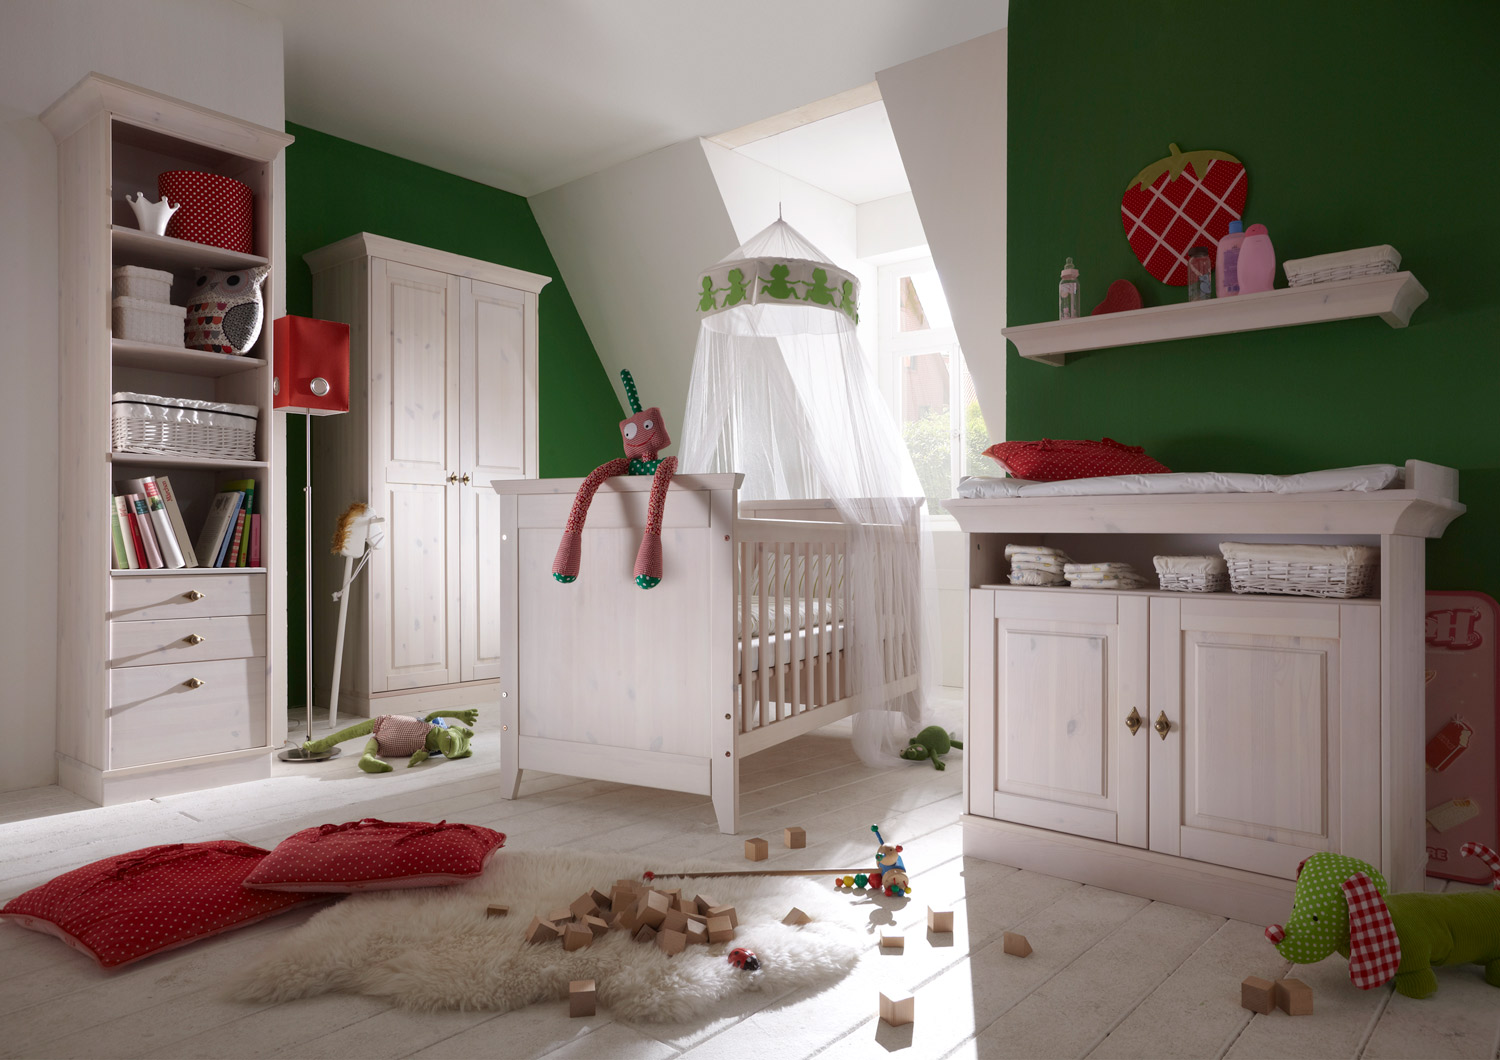 x line kinderbett 7007 im wallenfels onlineshop. Black Bedroom Furniture Sets. Home Design Ideas